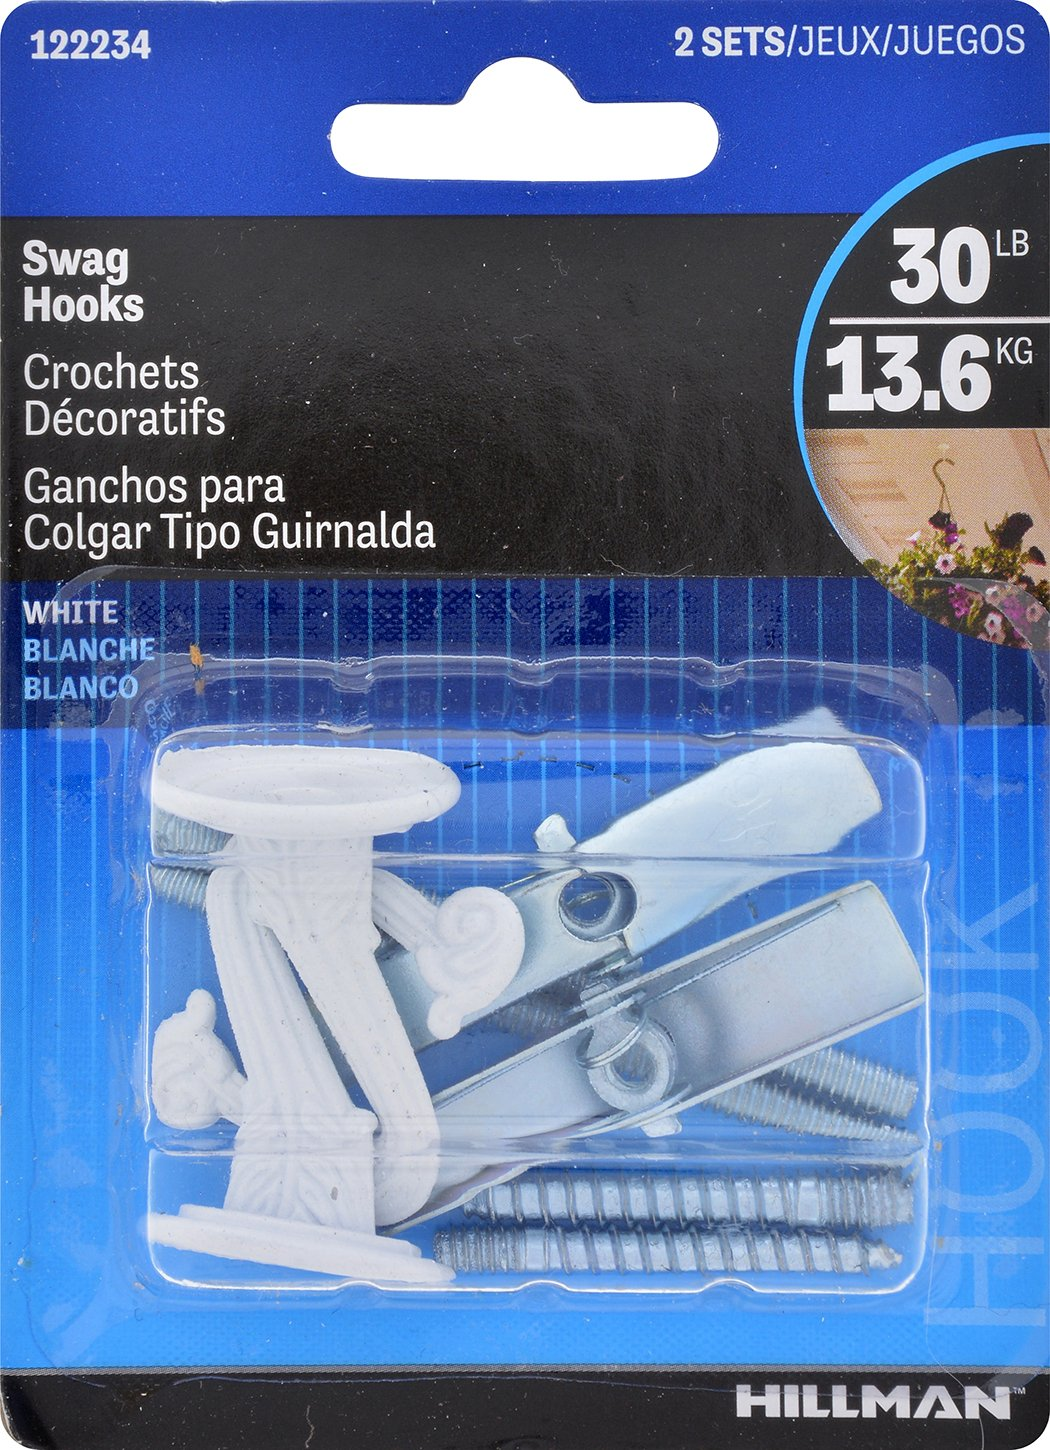 The Hillman Group 122234 Swag Hook